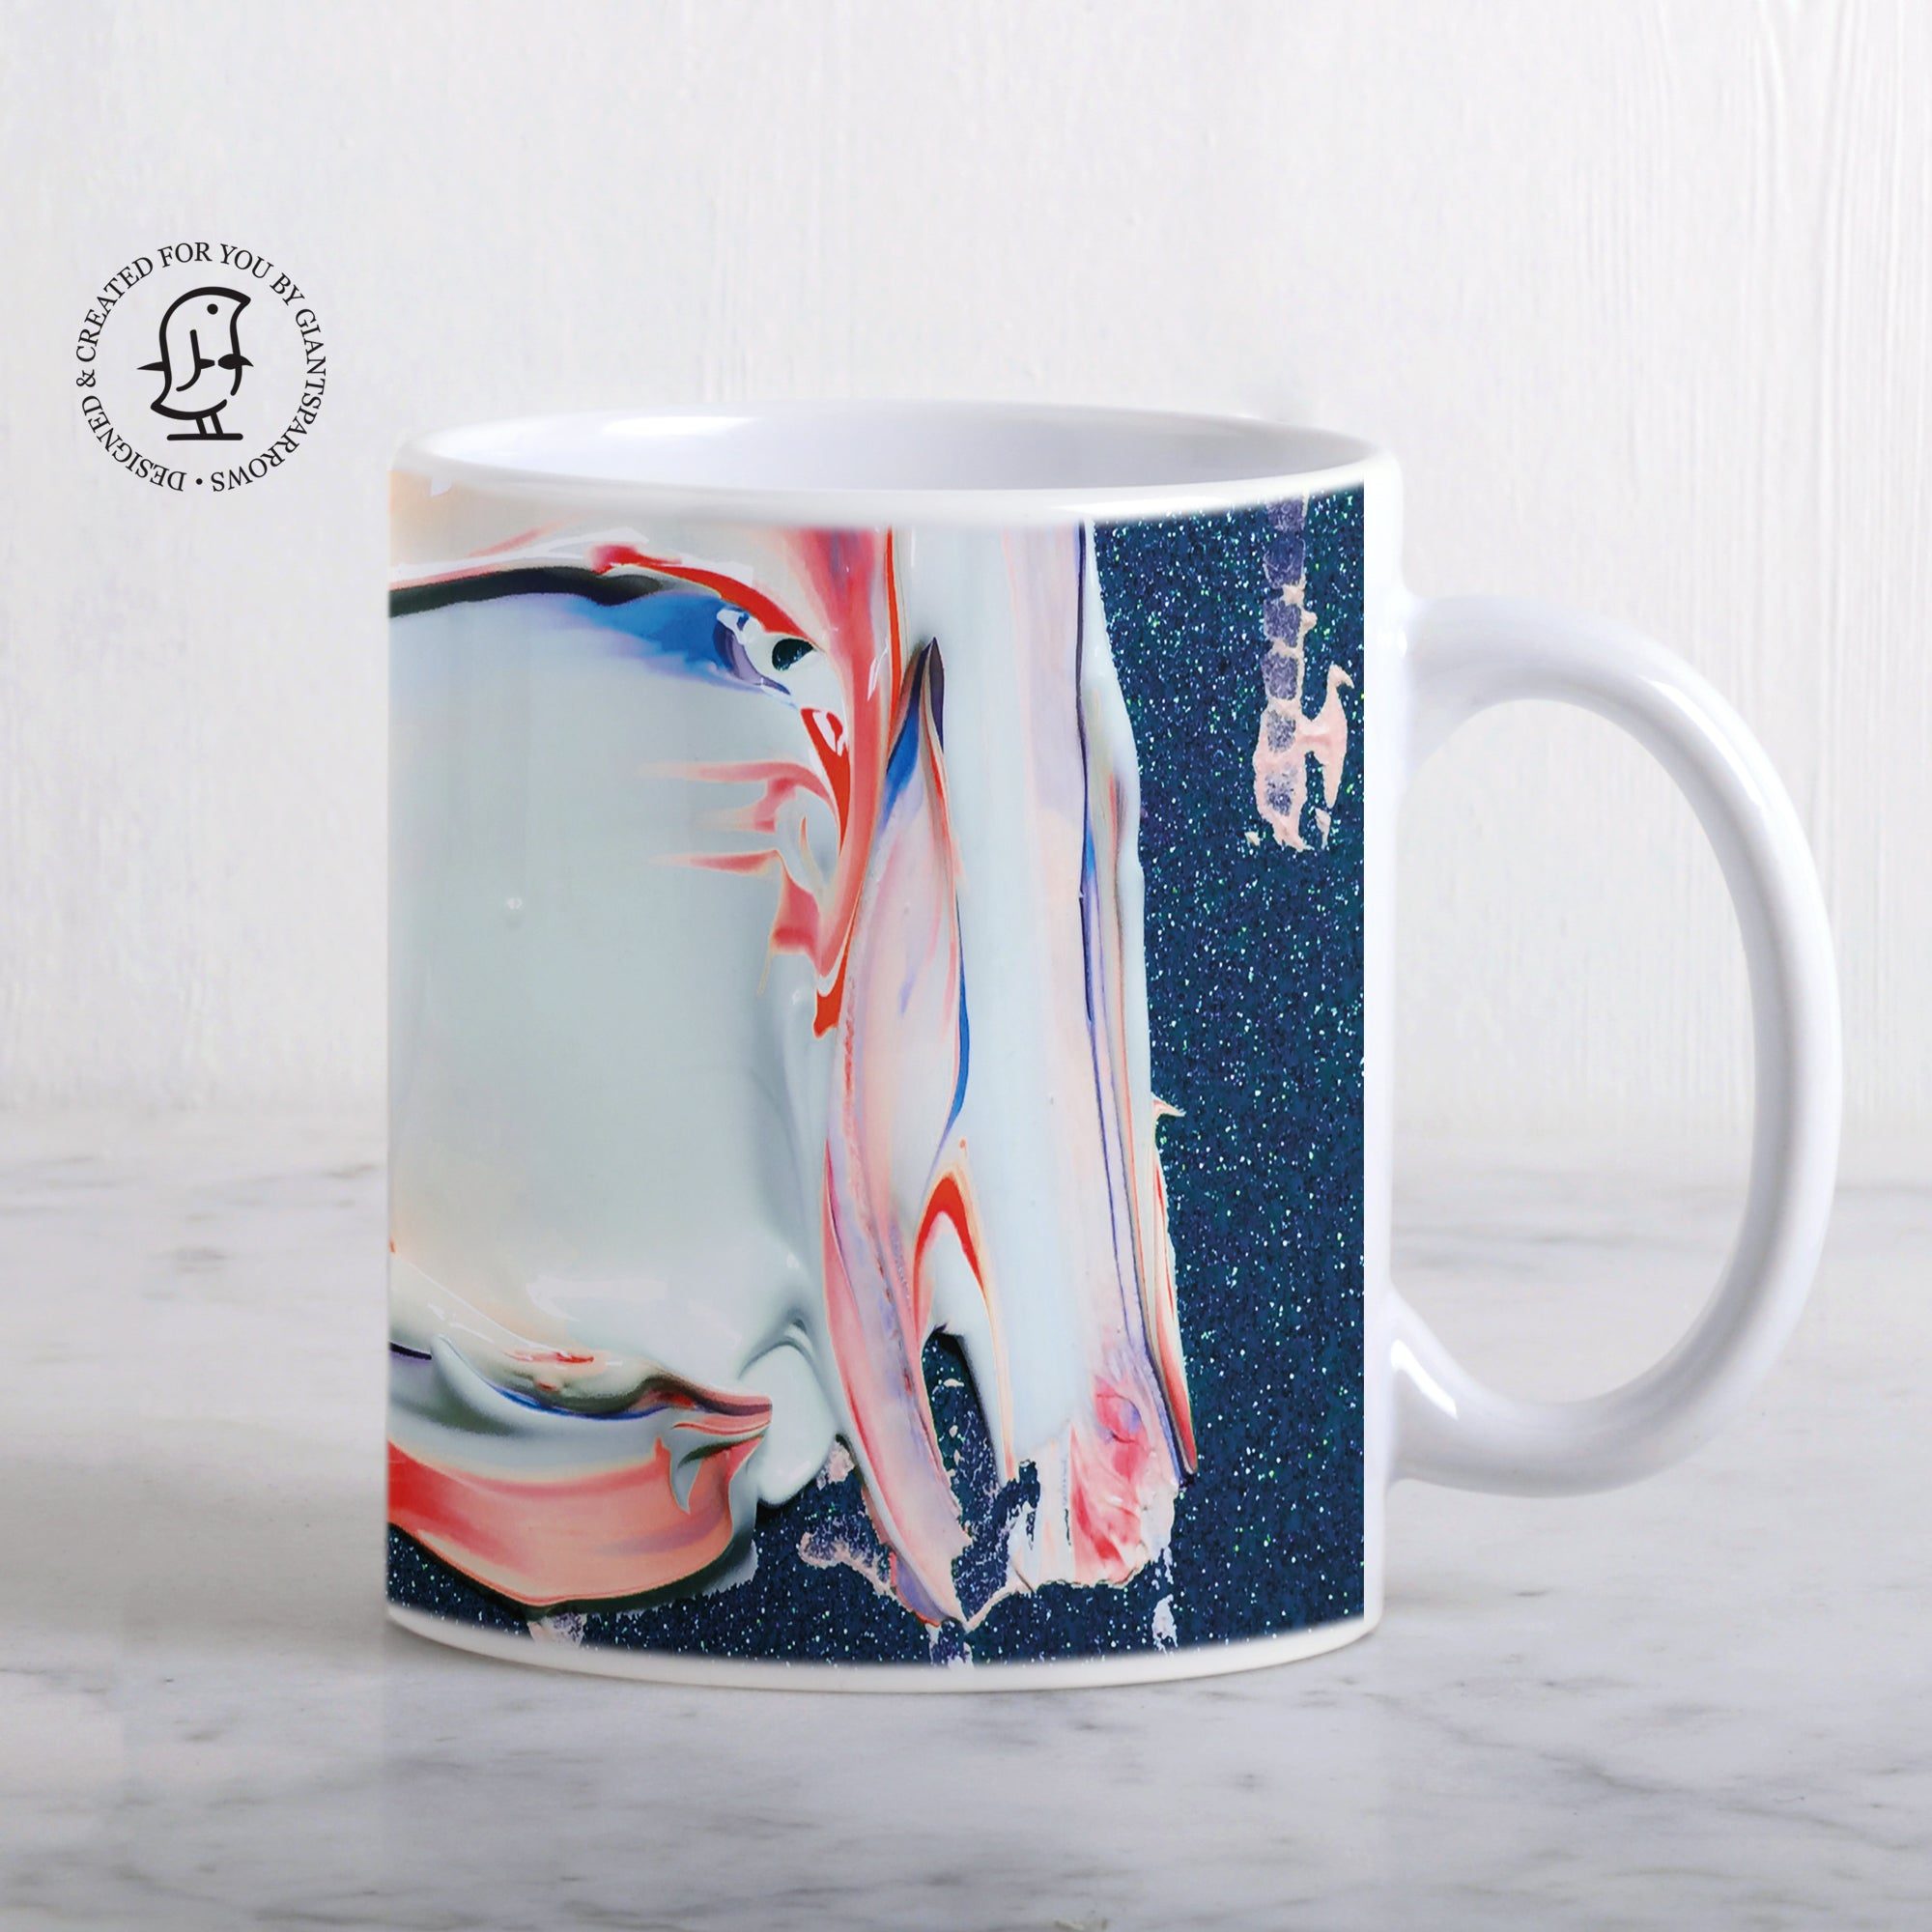 Glittery Blue, Pink and White Paint Mix Mug